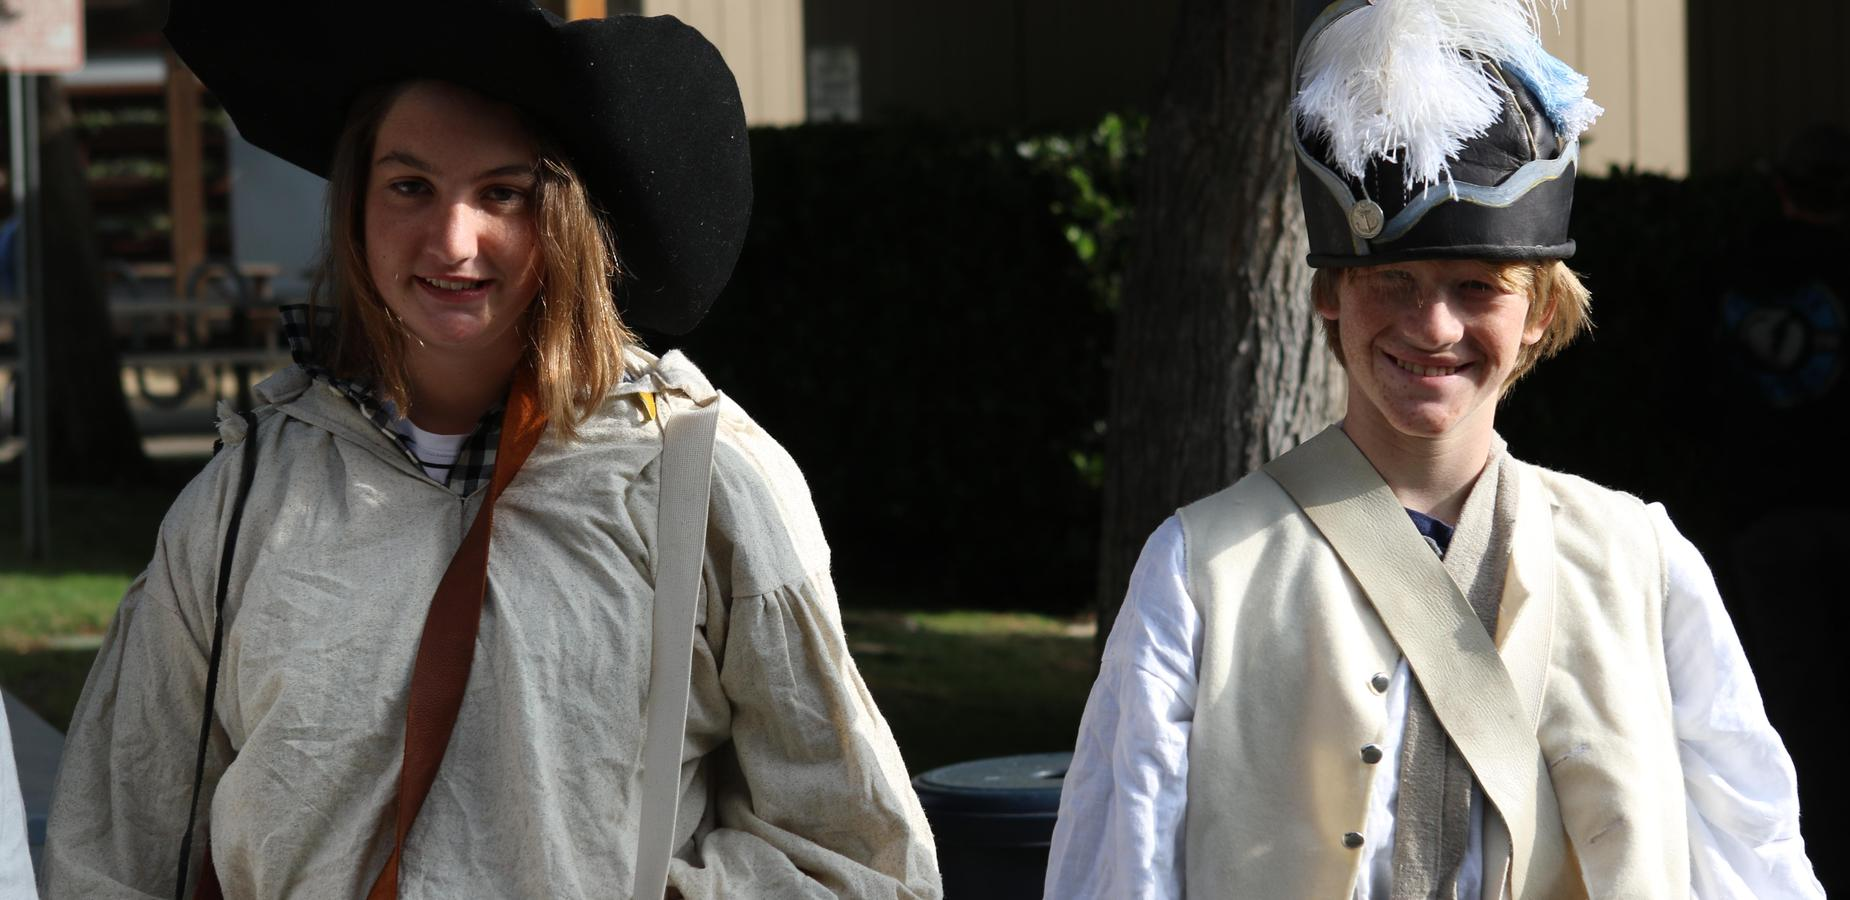 Students dressed in clothing that resembles items worn during the revolutionary war.